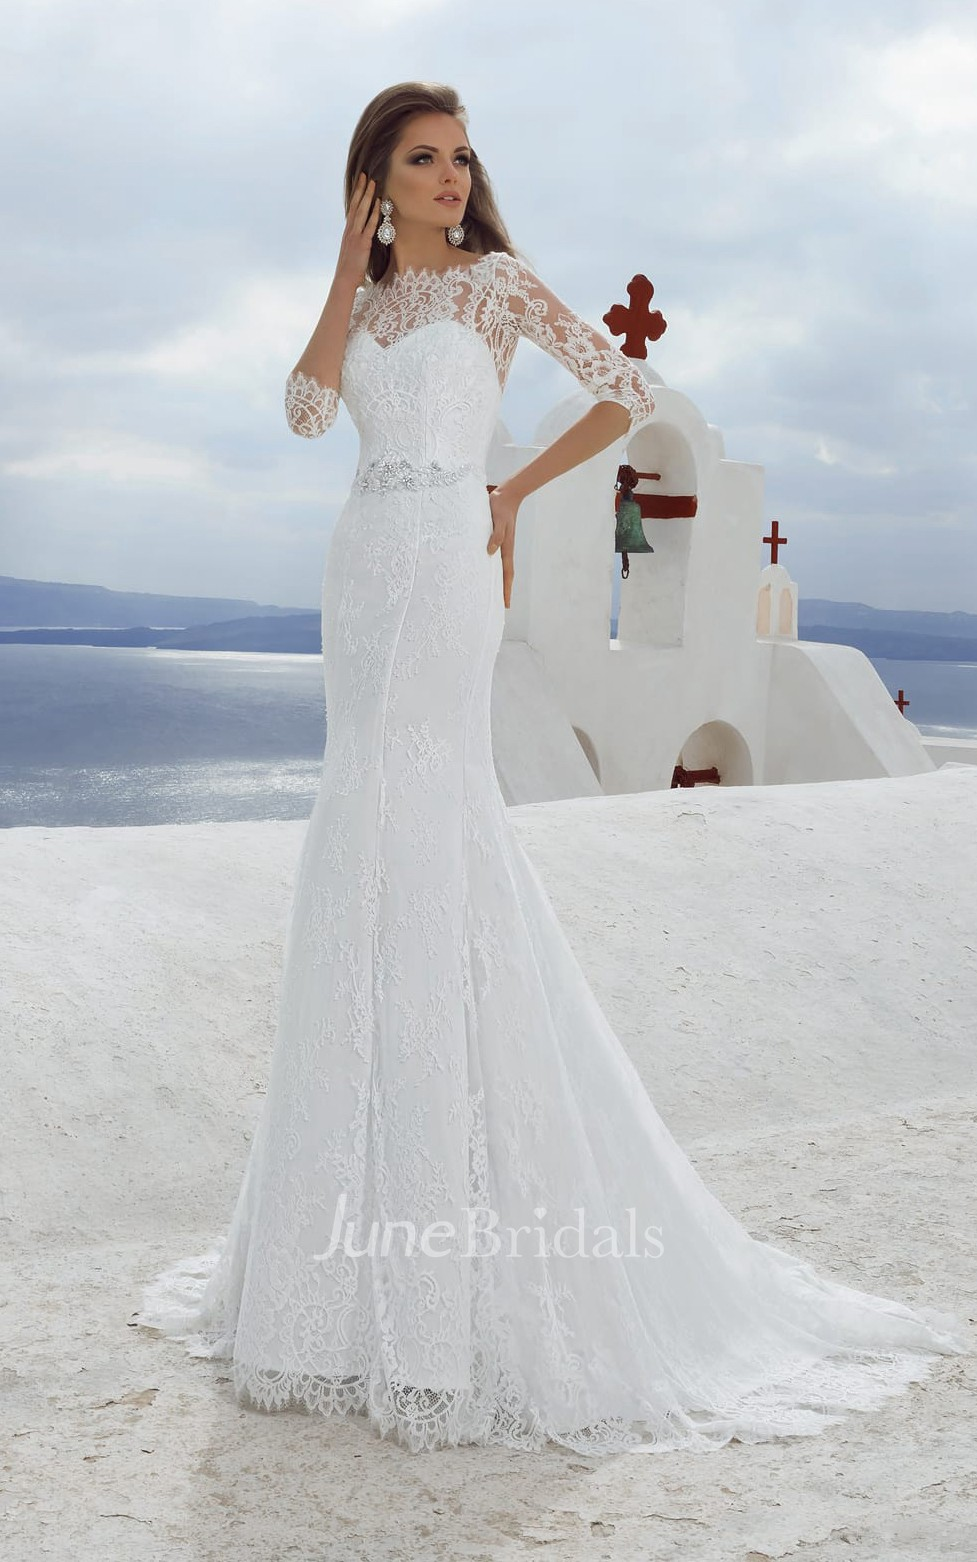 93a1b906a430 Bateau Neck 3-4 Length Sleeve Sheath Lace Wedding Dress With Beading - June  Bridals